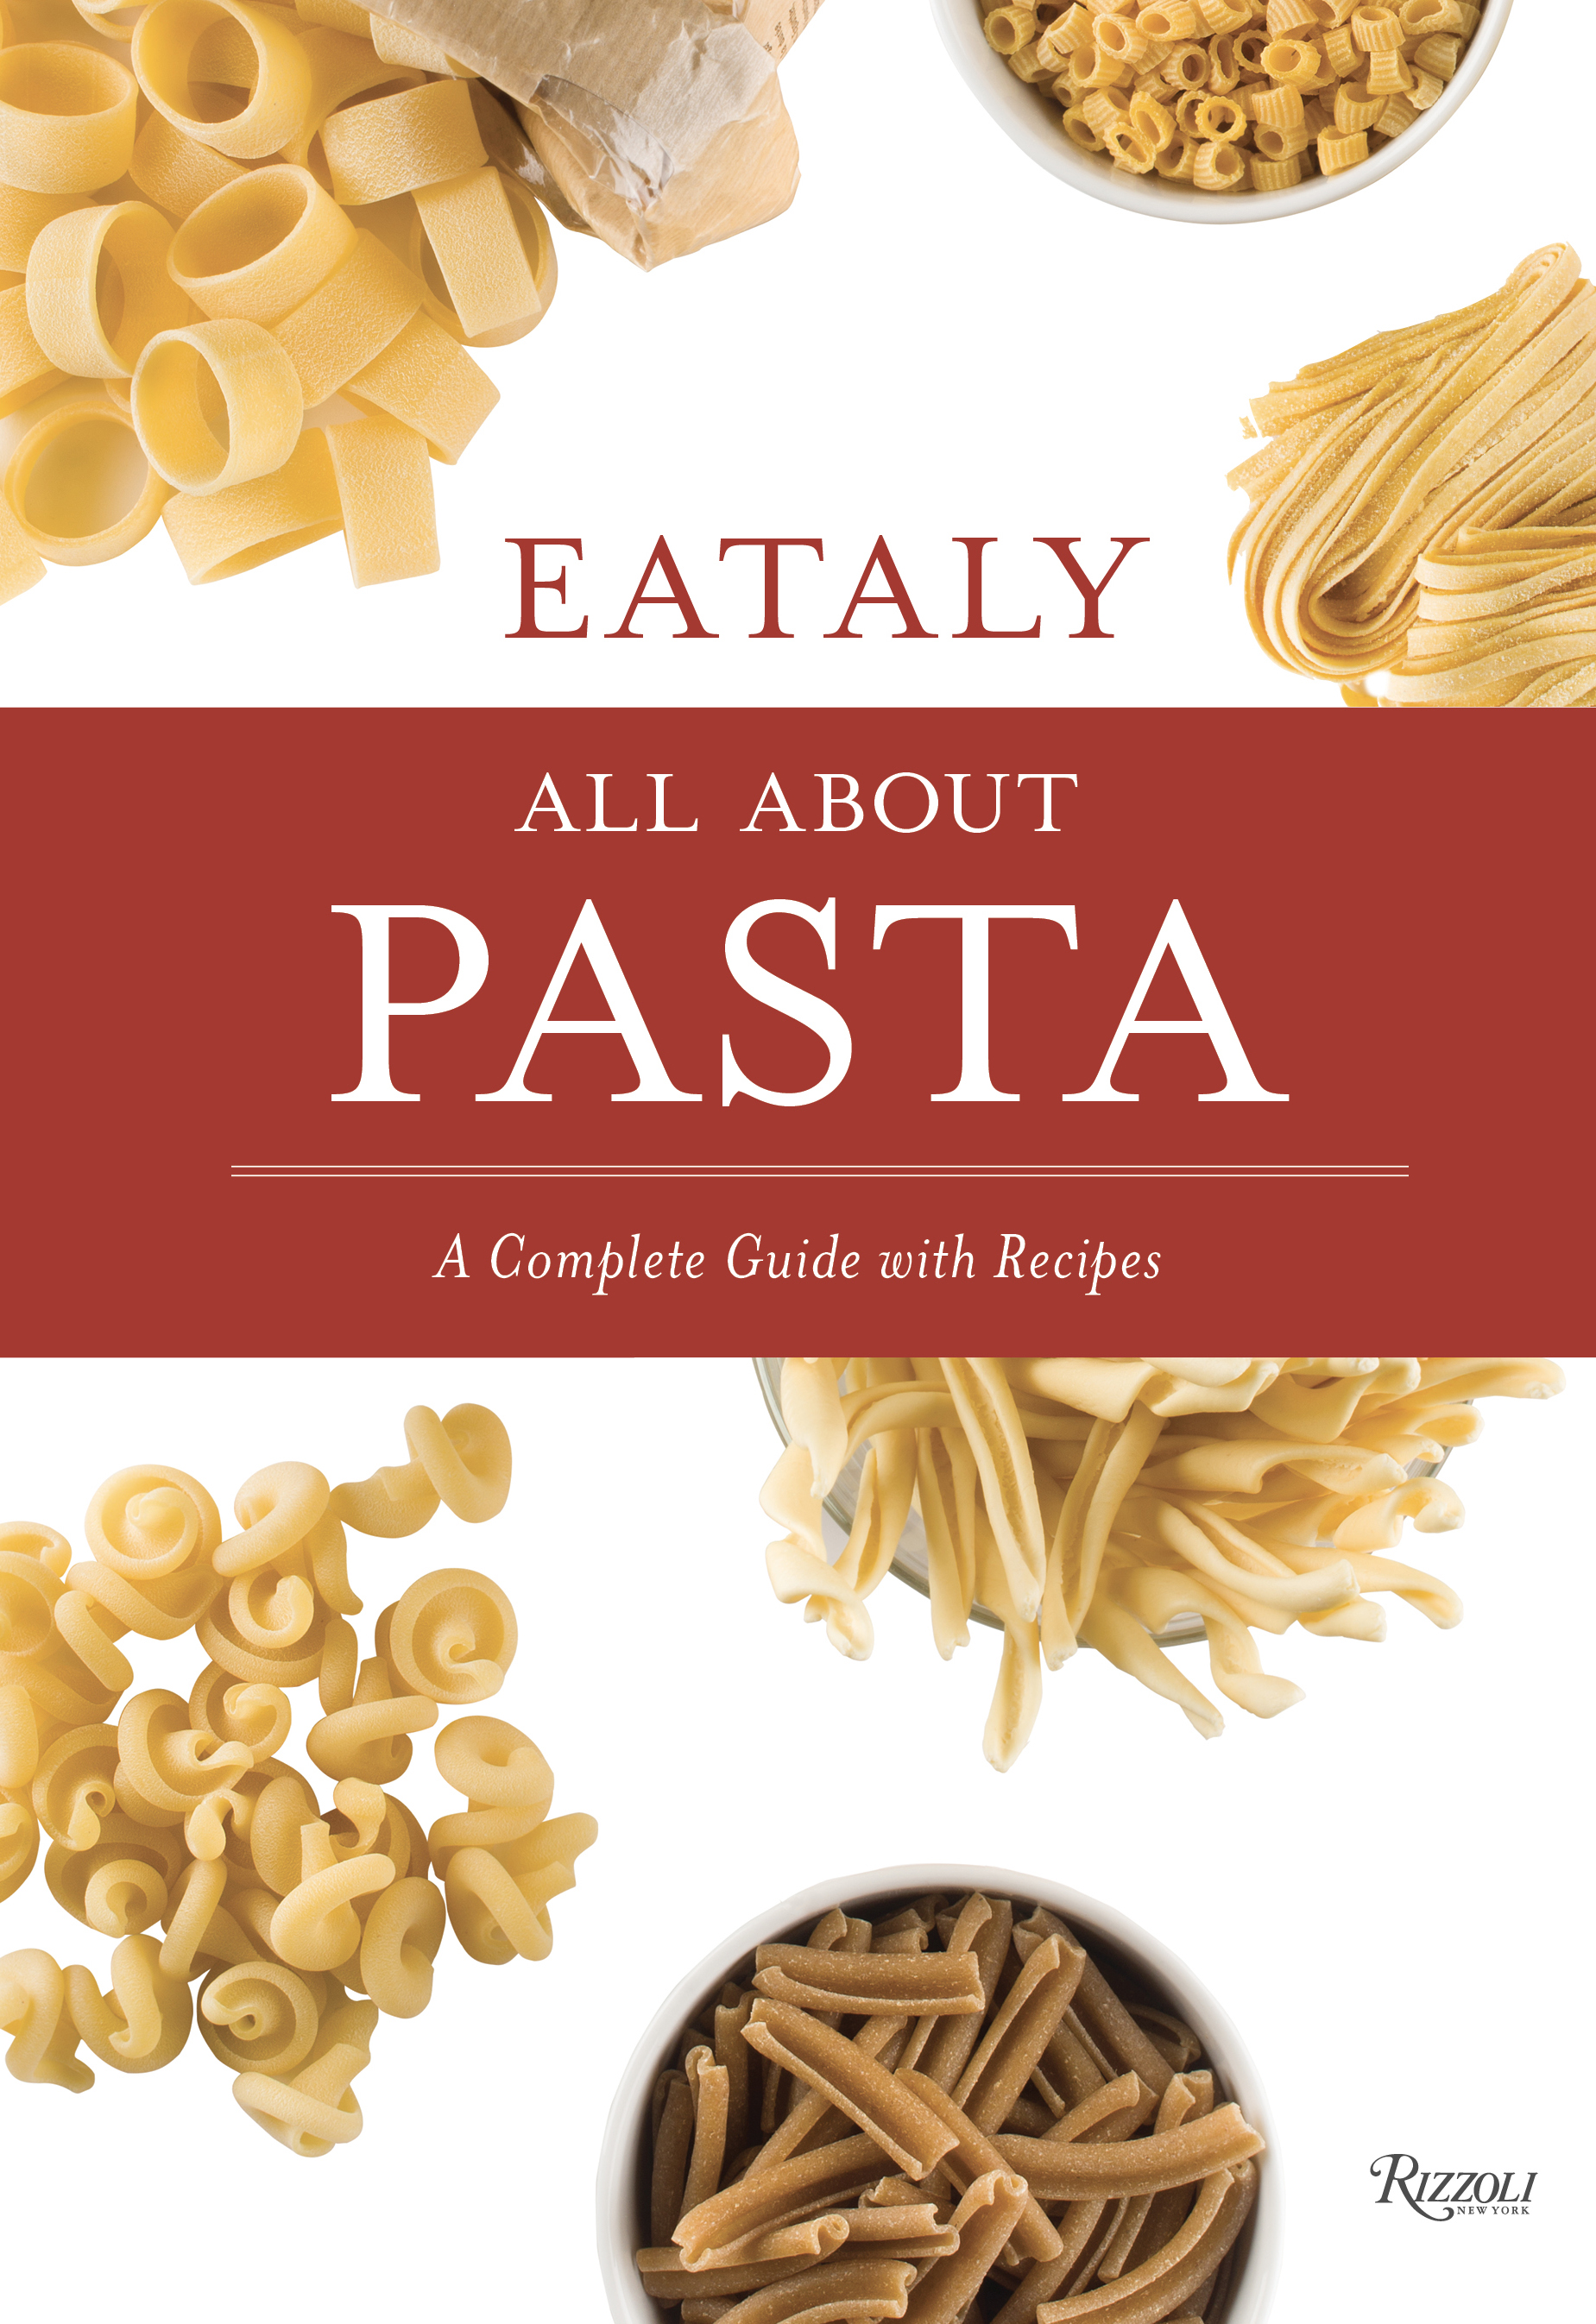 Eataly: All About Pasta: A Complete Guide with Recipes